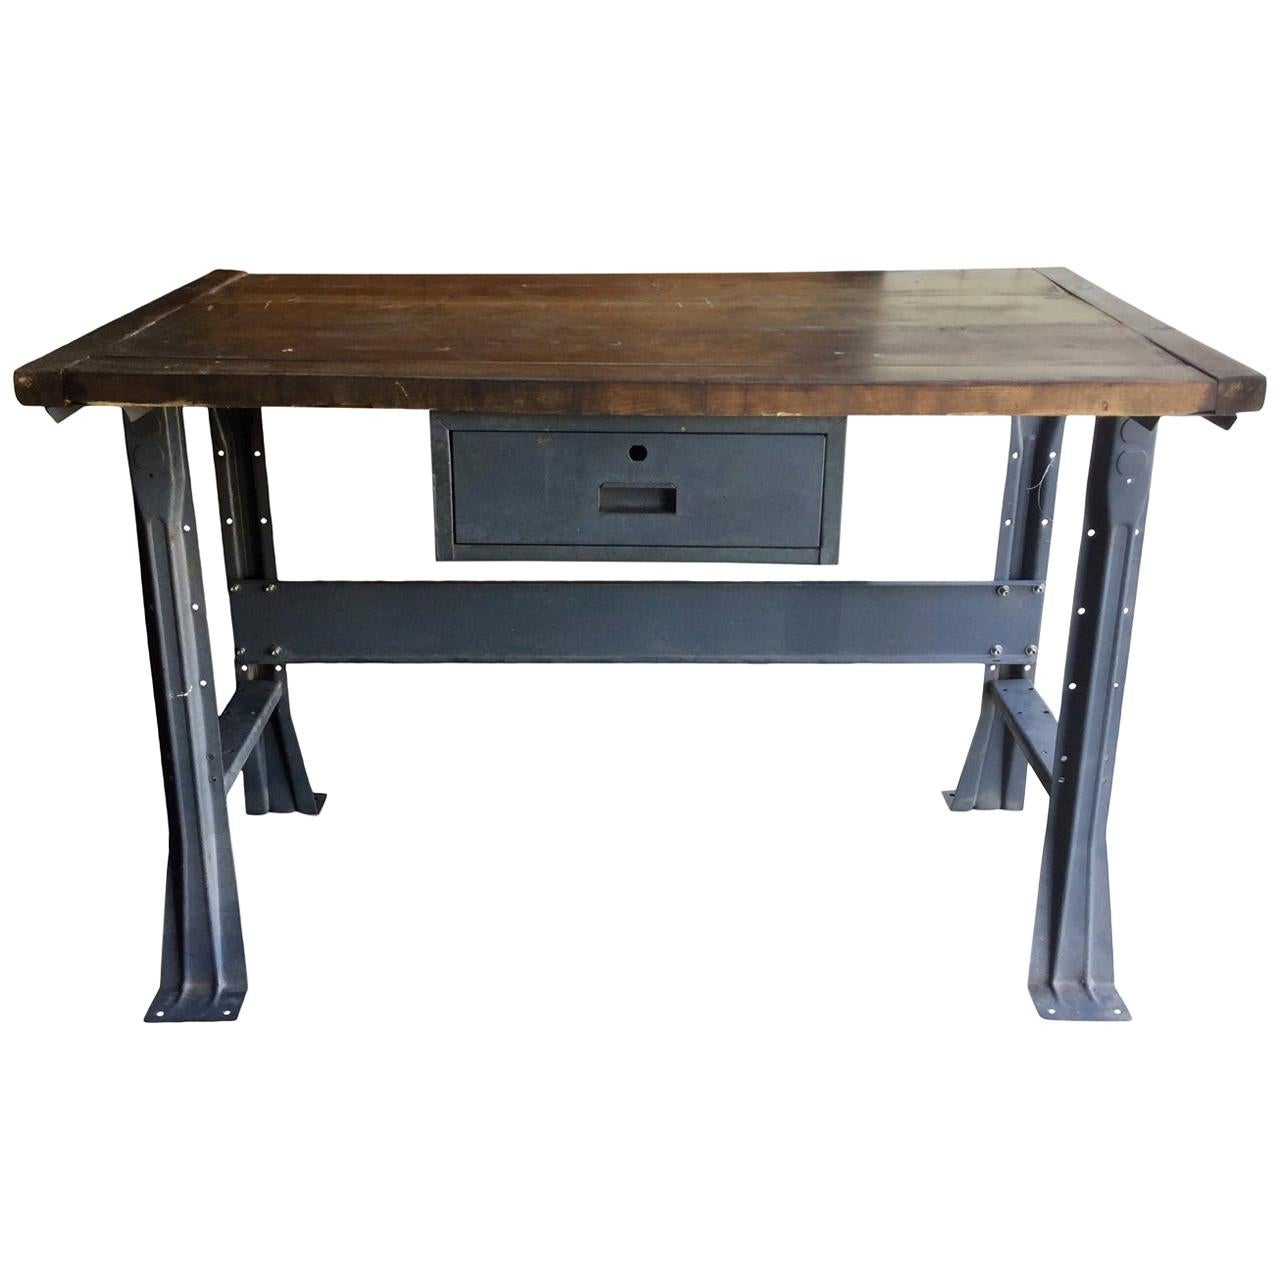 Metal Work Table with Drawer